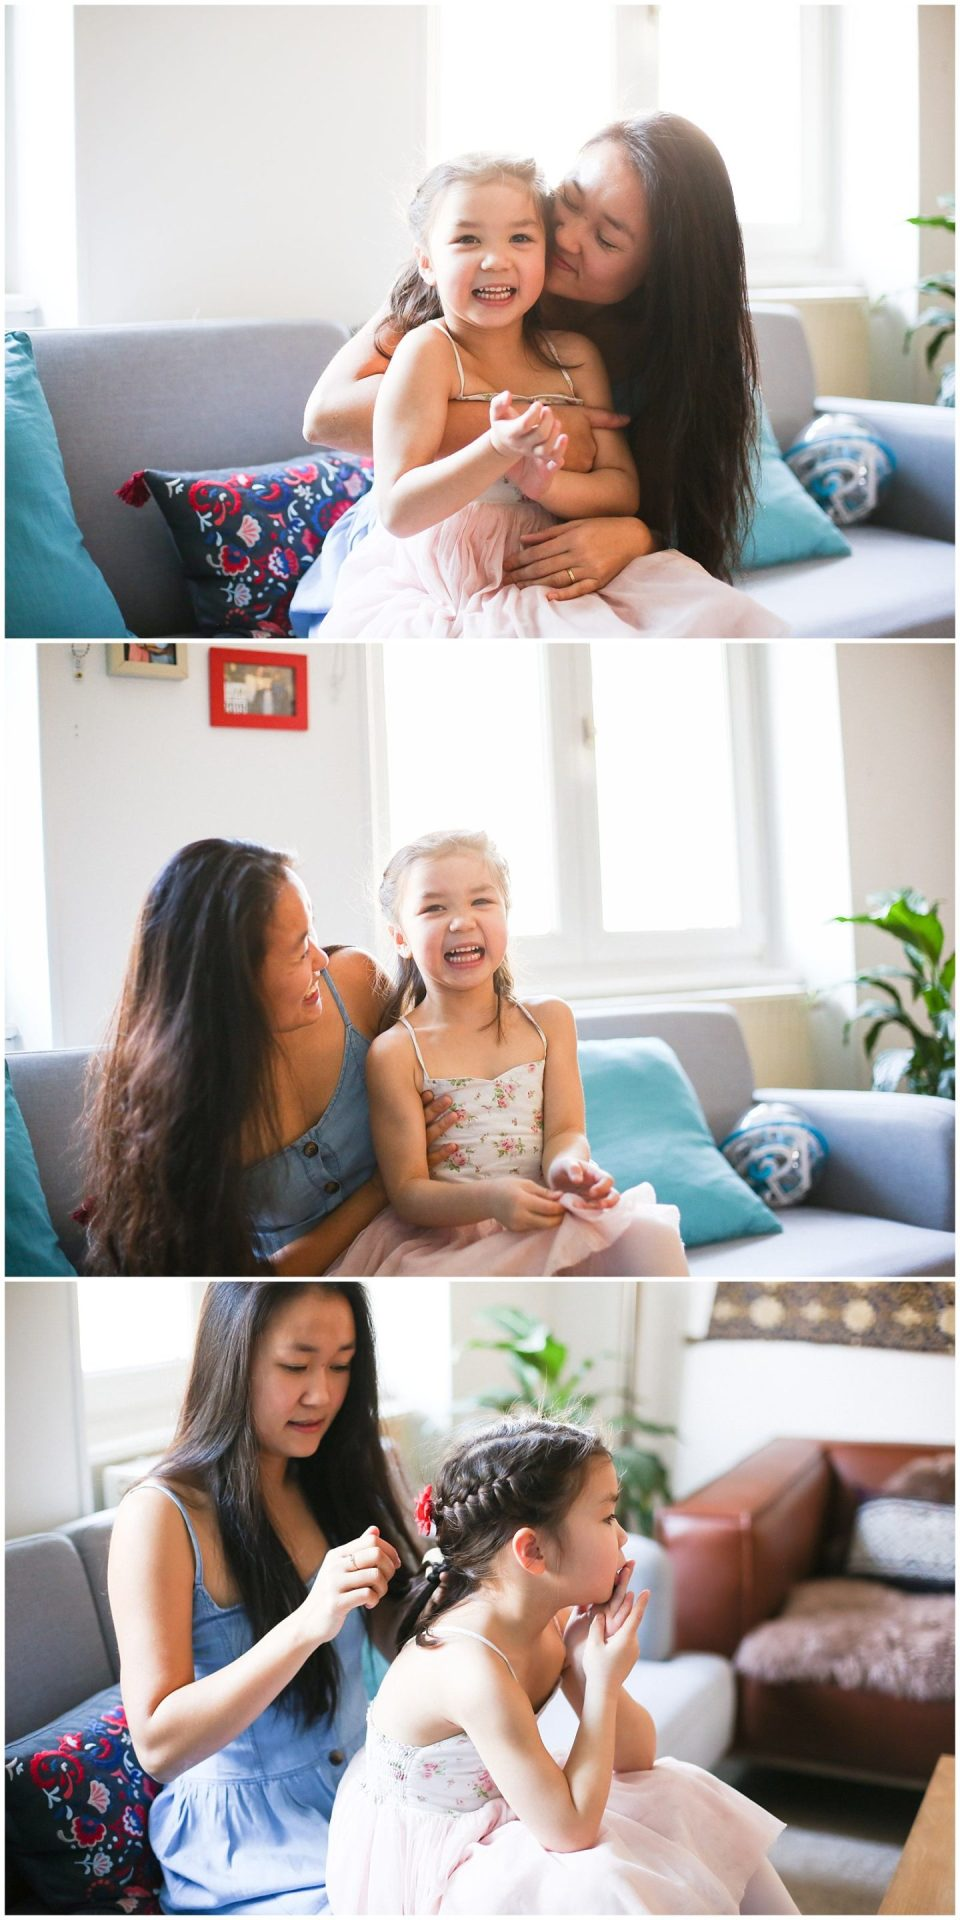 mother braids child's hair during Home Lifestyle Family Photo Session in France